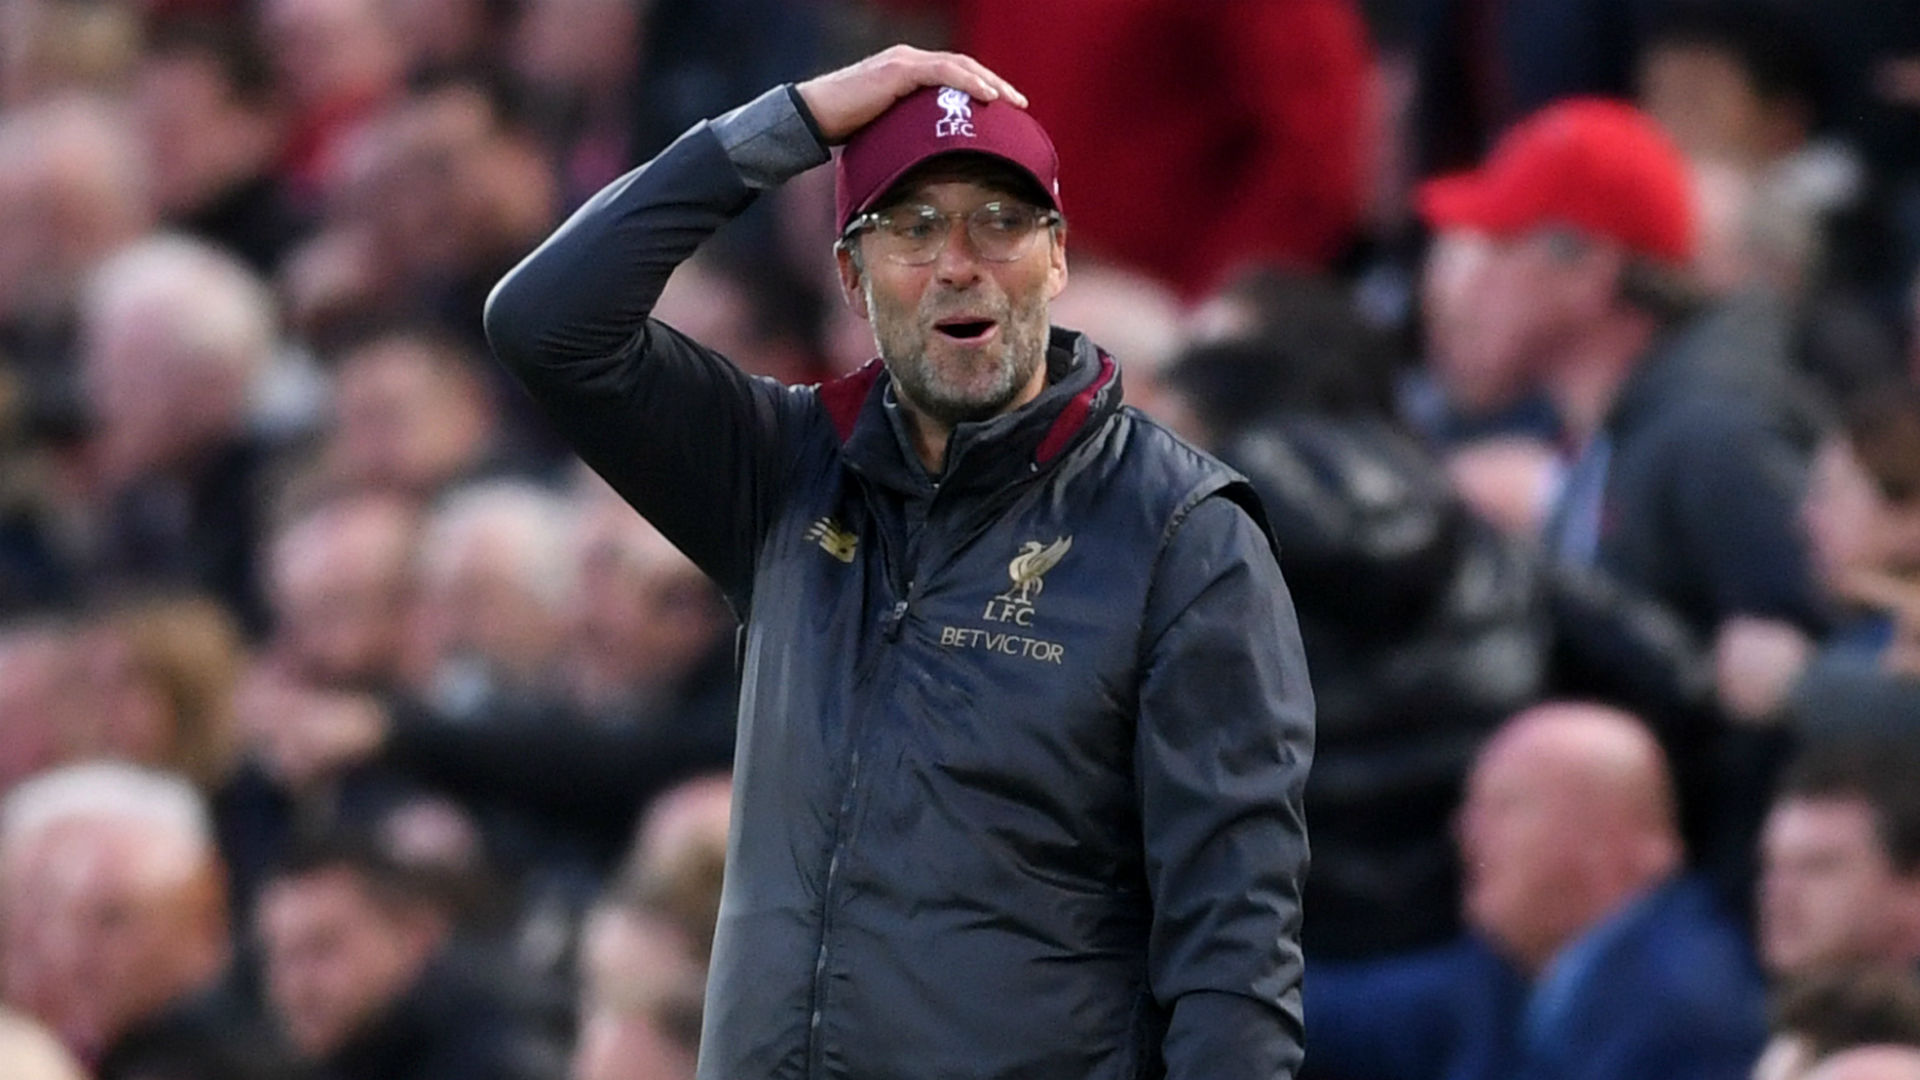 Maybe it's my interviews - Klopp on Liverpool's room for improvement